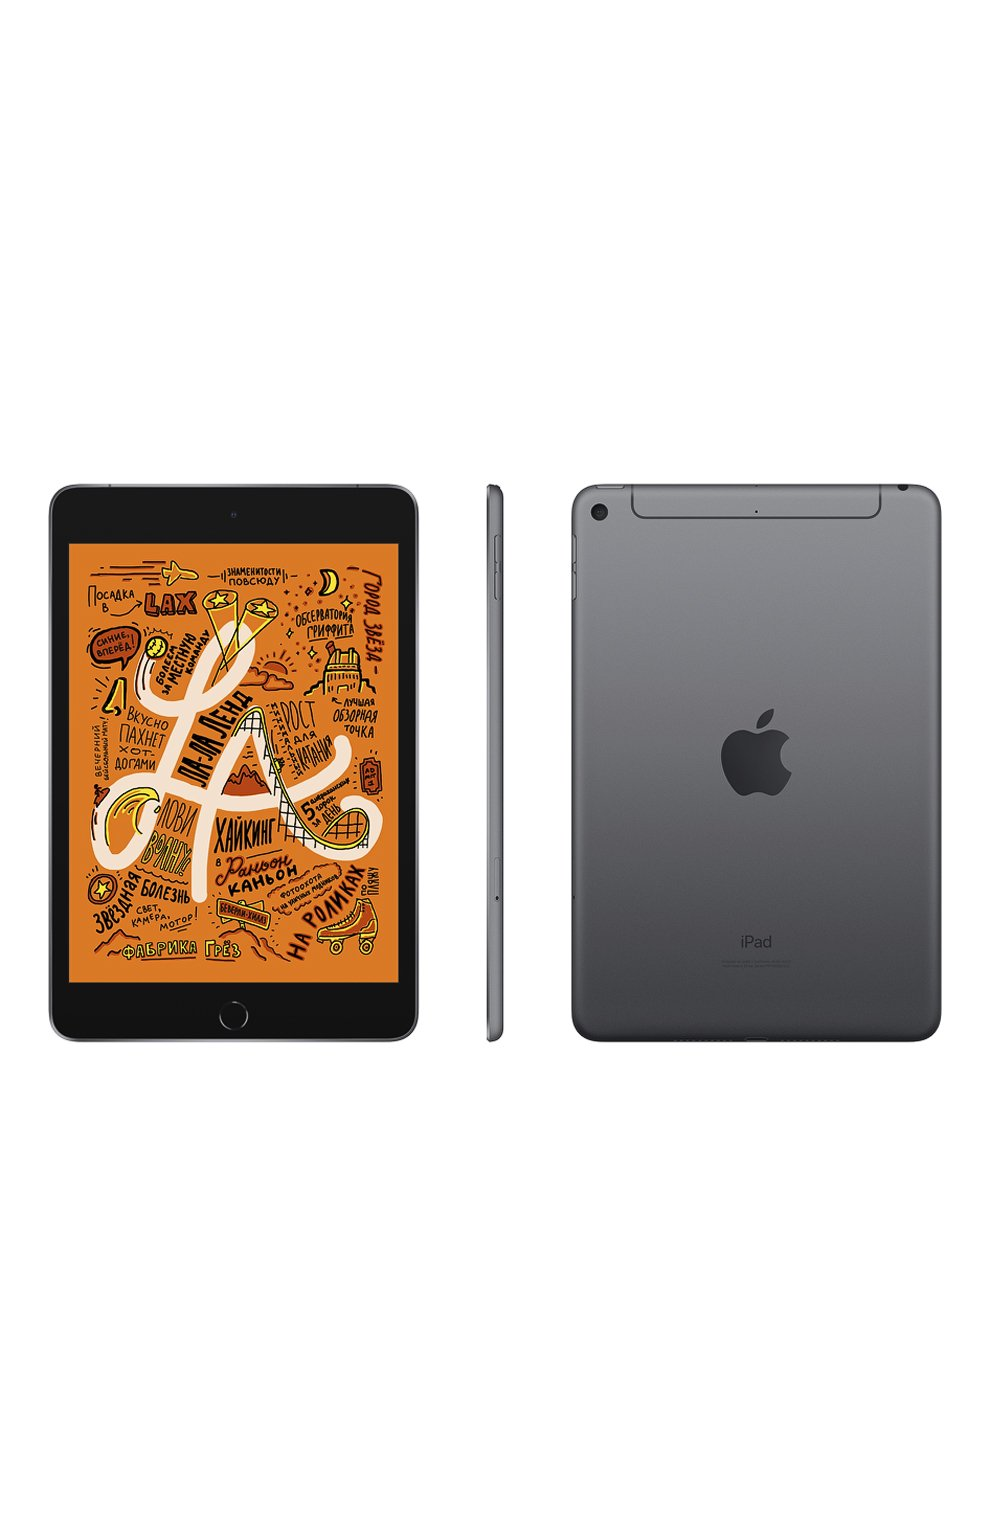 Ipad mini wi-fi + cellular 256gb space gray APPLE  space gray цвета, арт. MUXC2RU/A | Фото 2